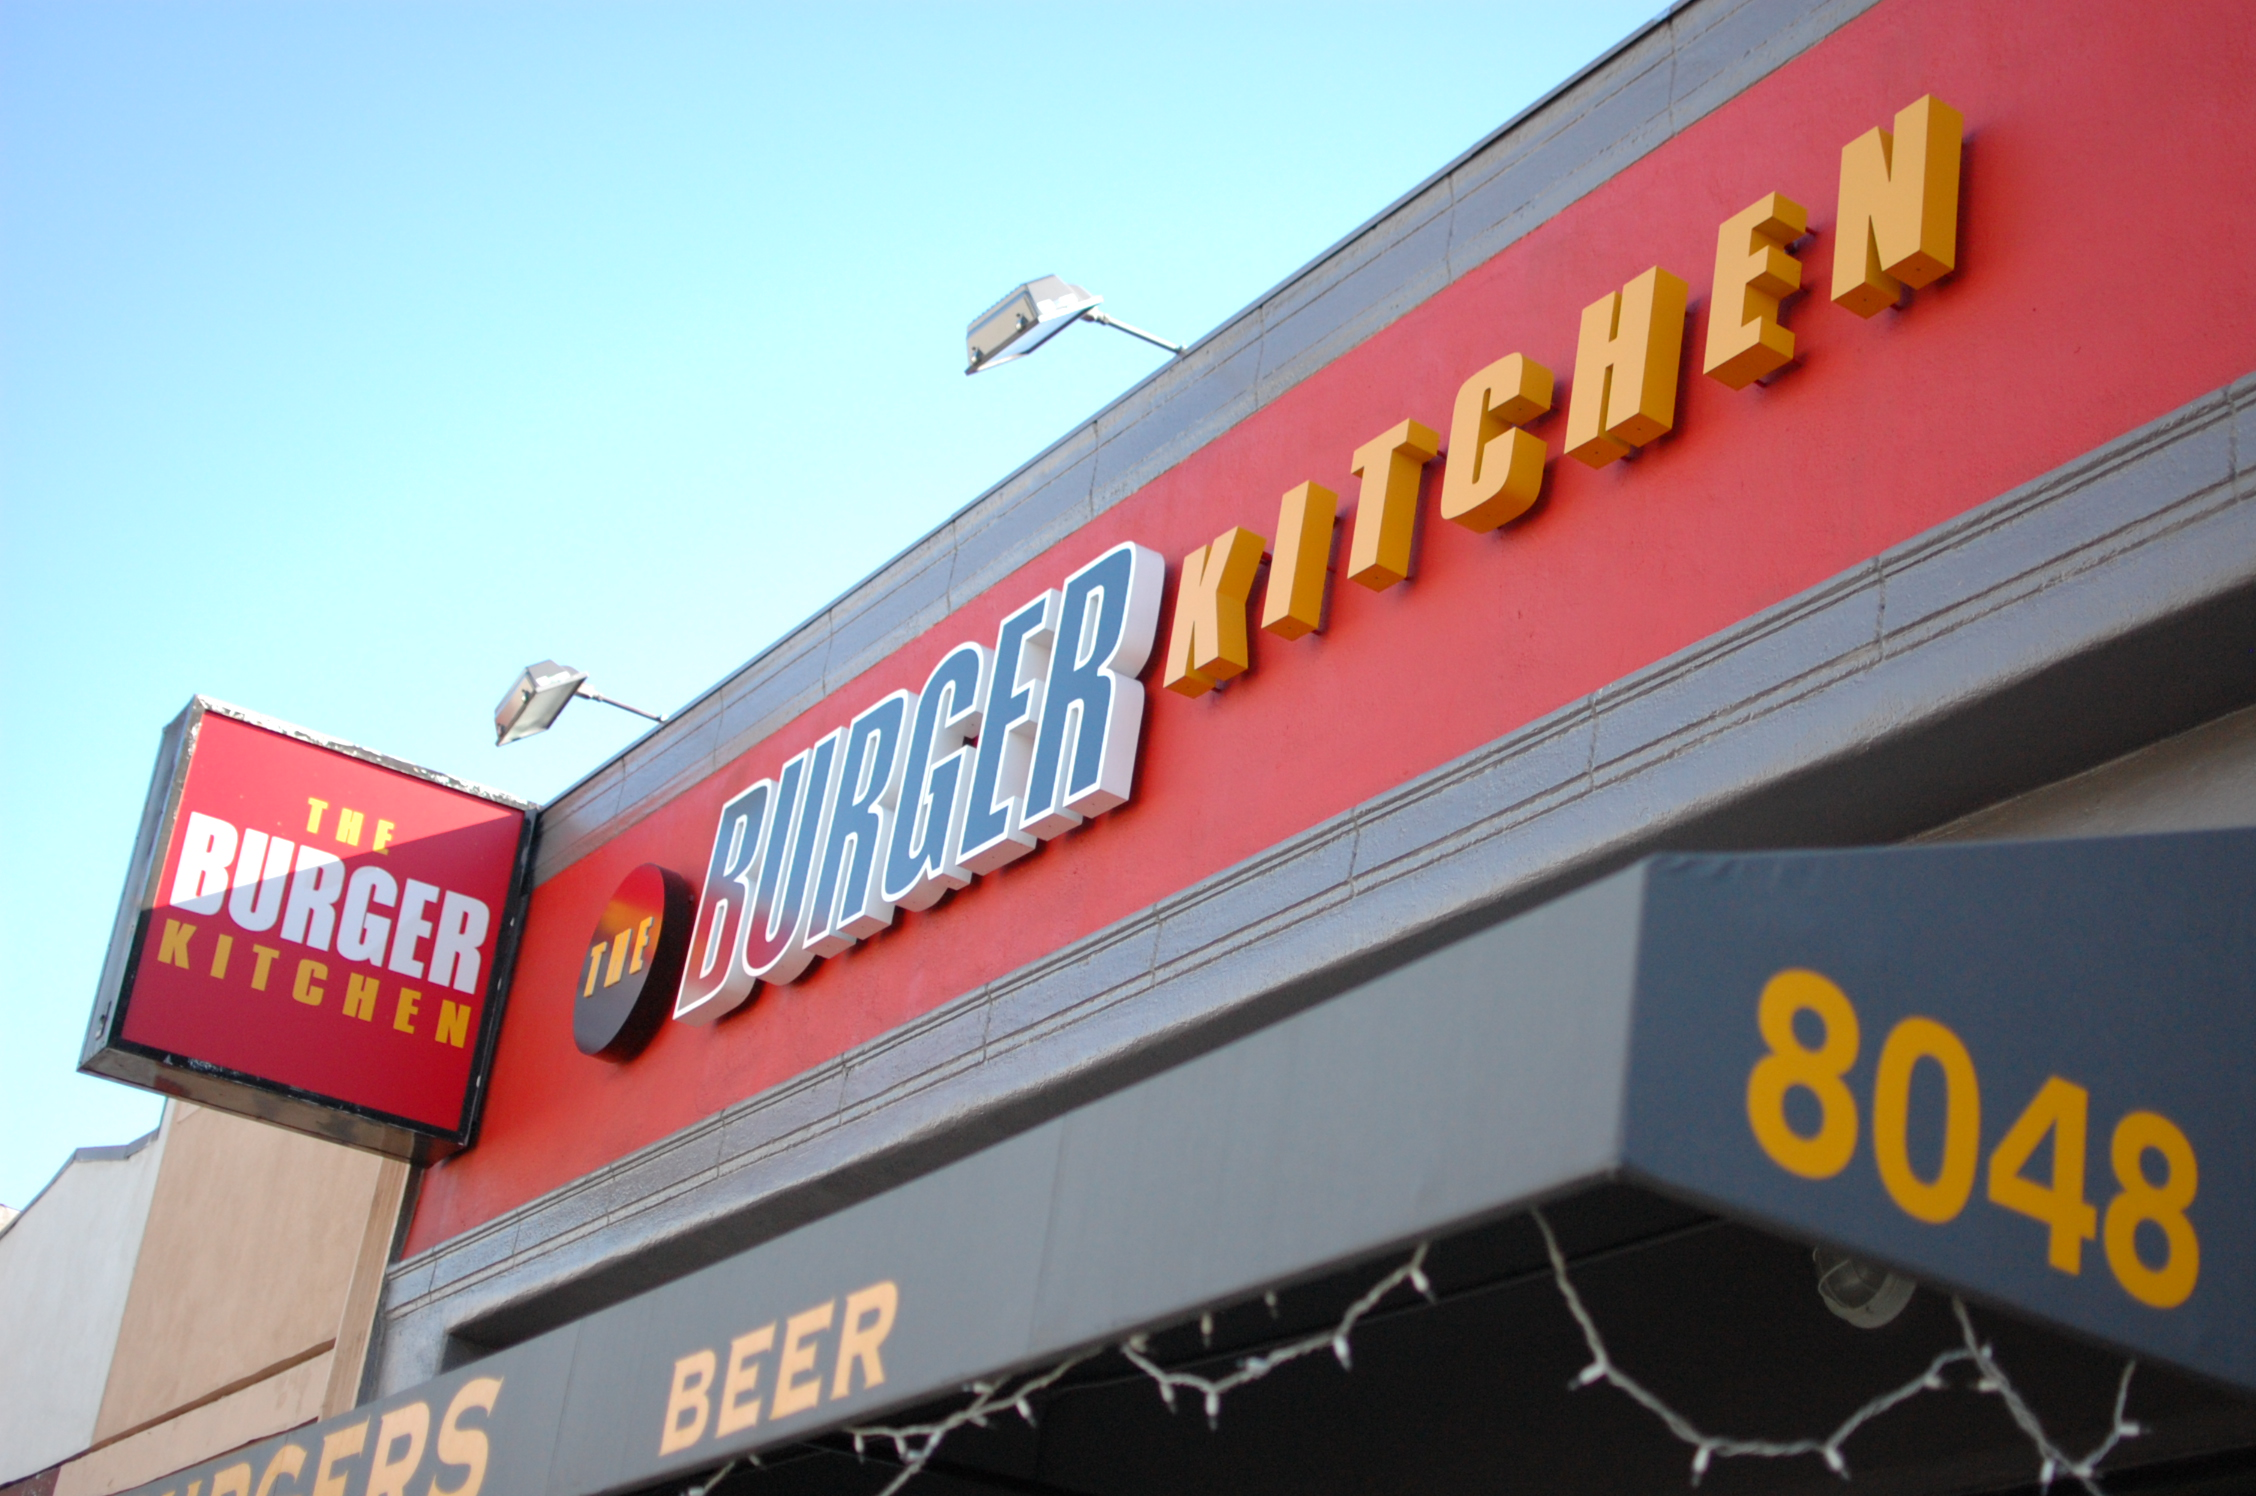 Not All Burgers Are the Same – The Burger Kitchen – Dine, Travel ...